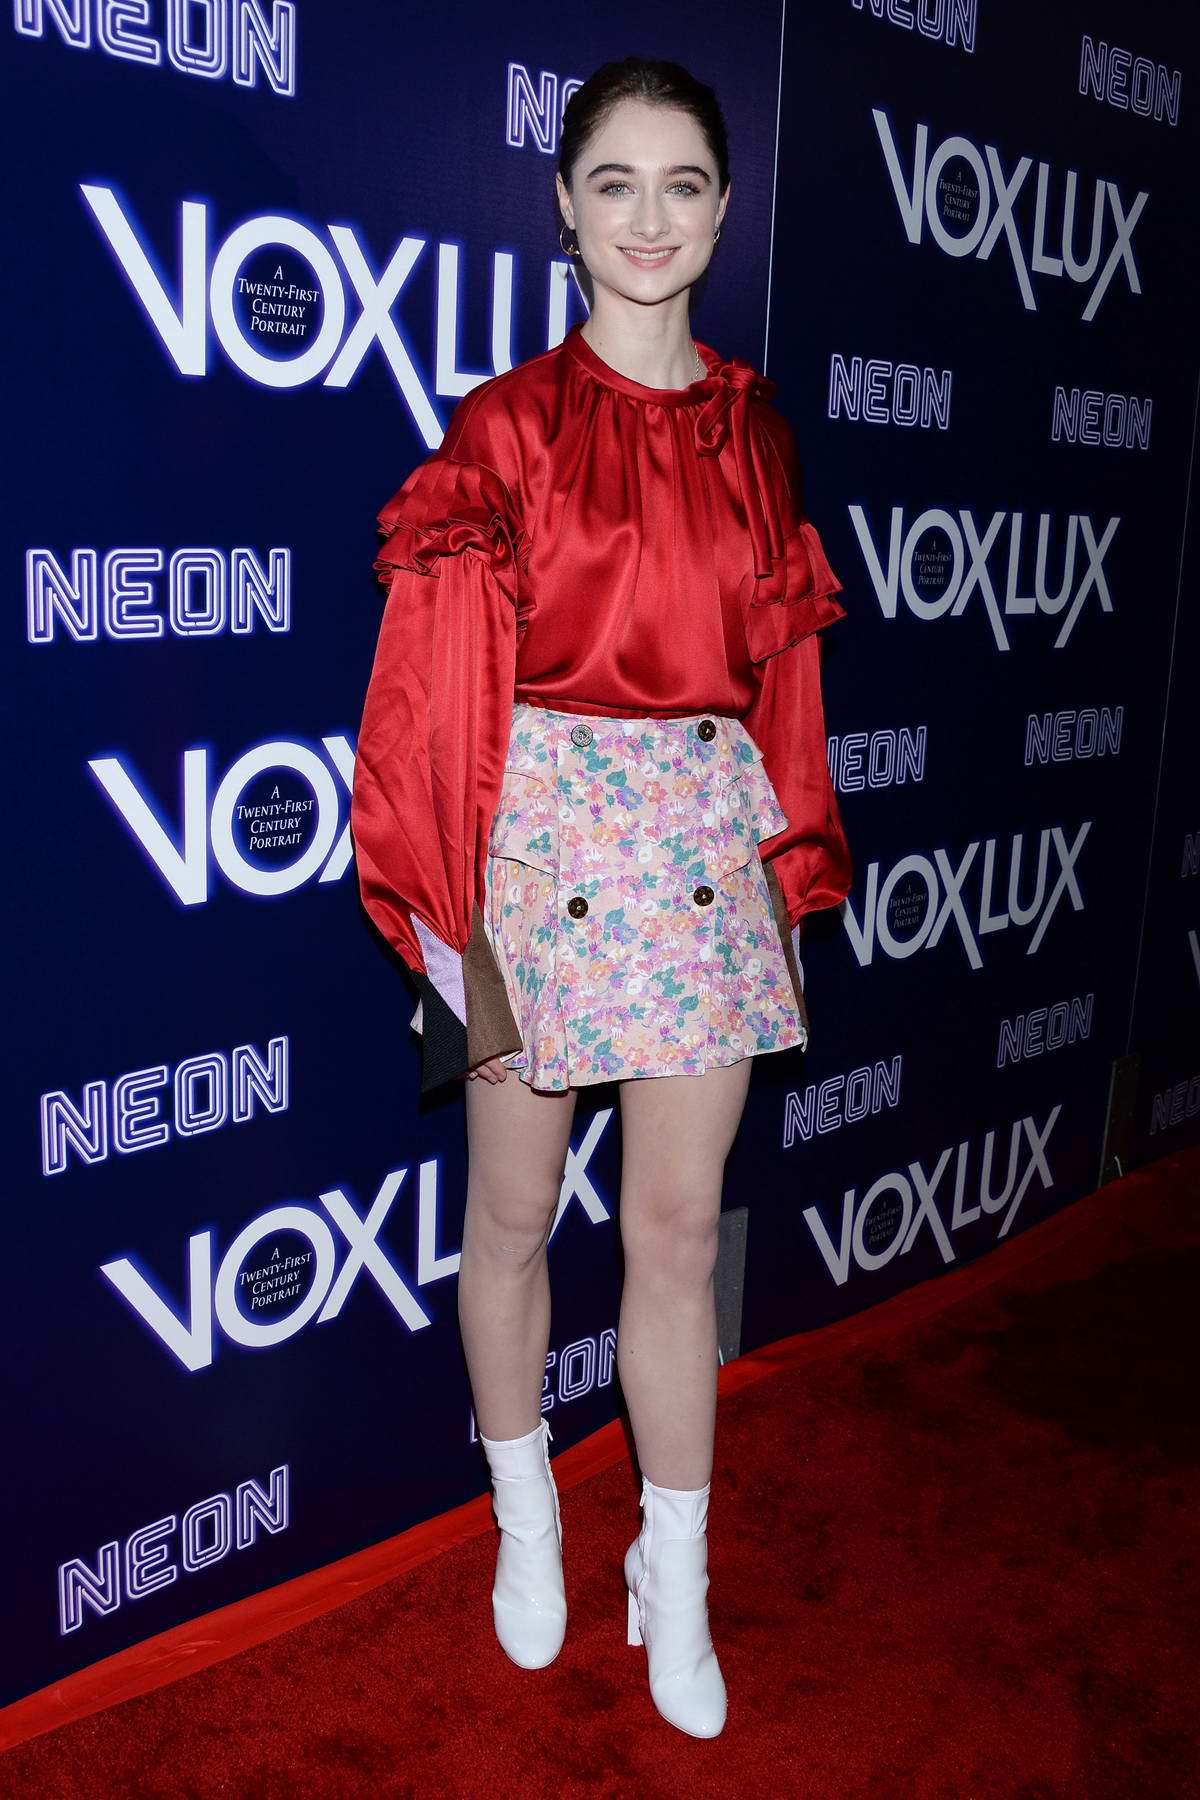 Raffey Cassidy attends 'Vox Lux' Premiere in Hollywood, California